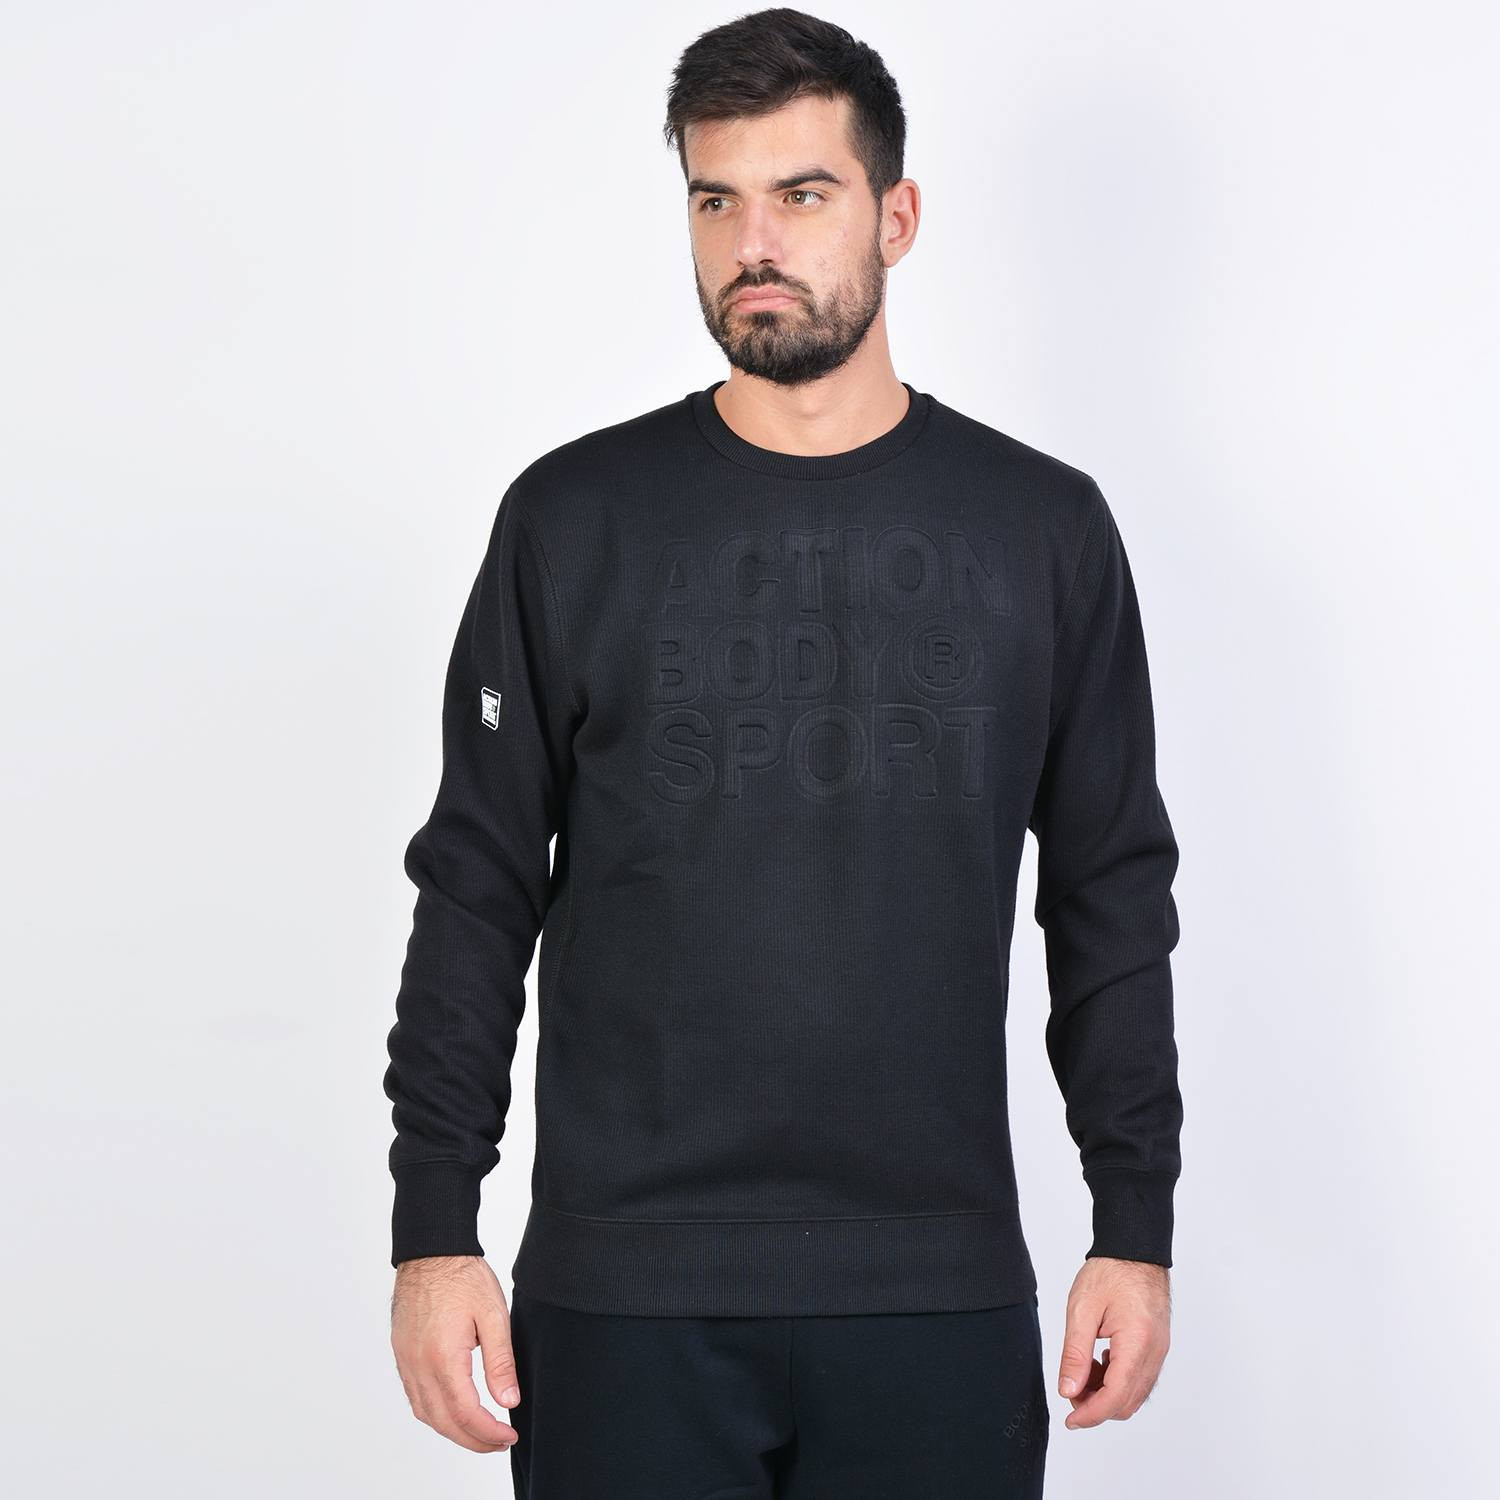 Body Action Crewneck Sweatshirt (9000041207_1899)